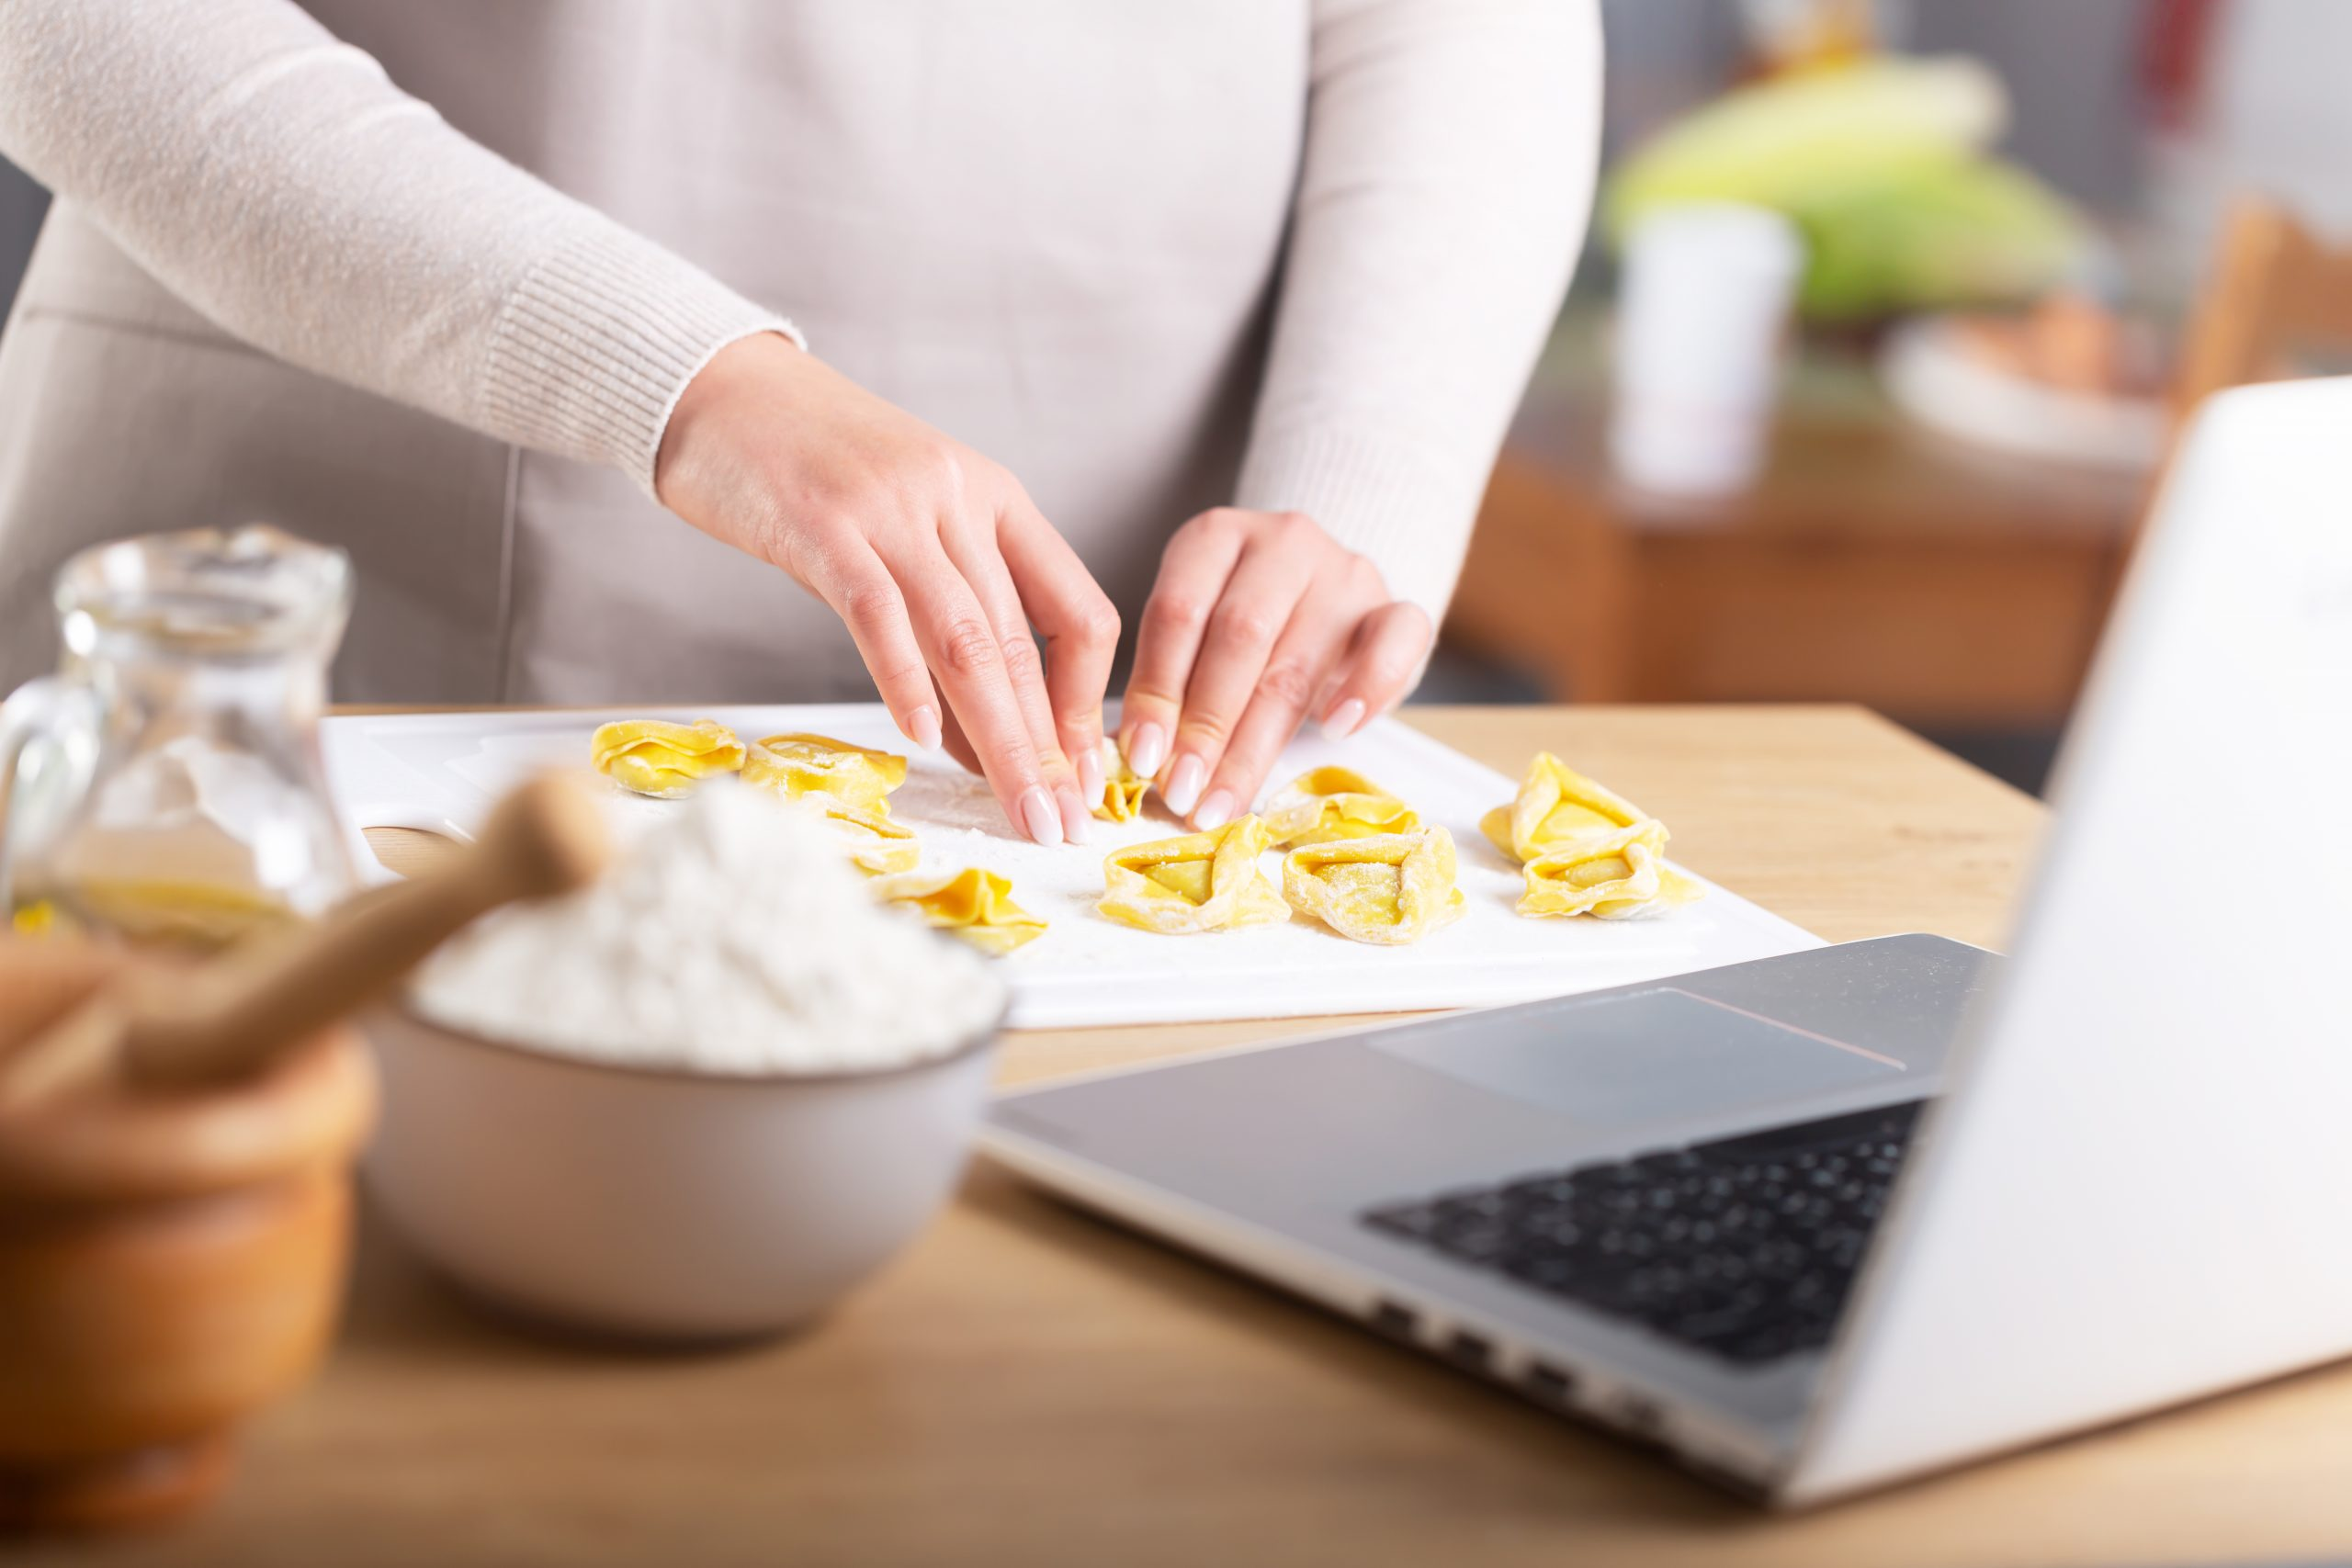 virtual cooking class, q link wireless is giving a free $100 visa gift card in a mother's day giveaway